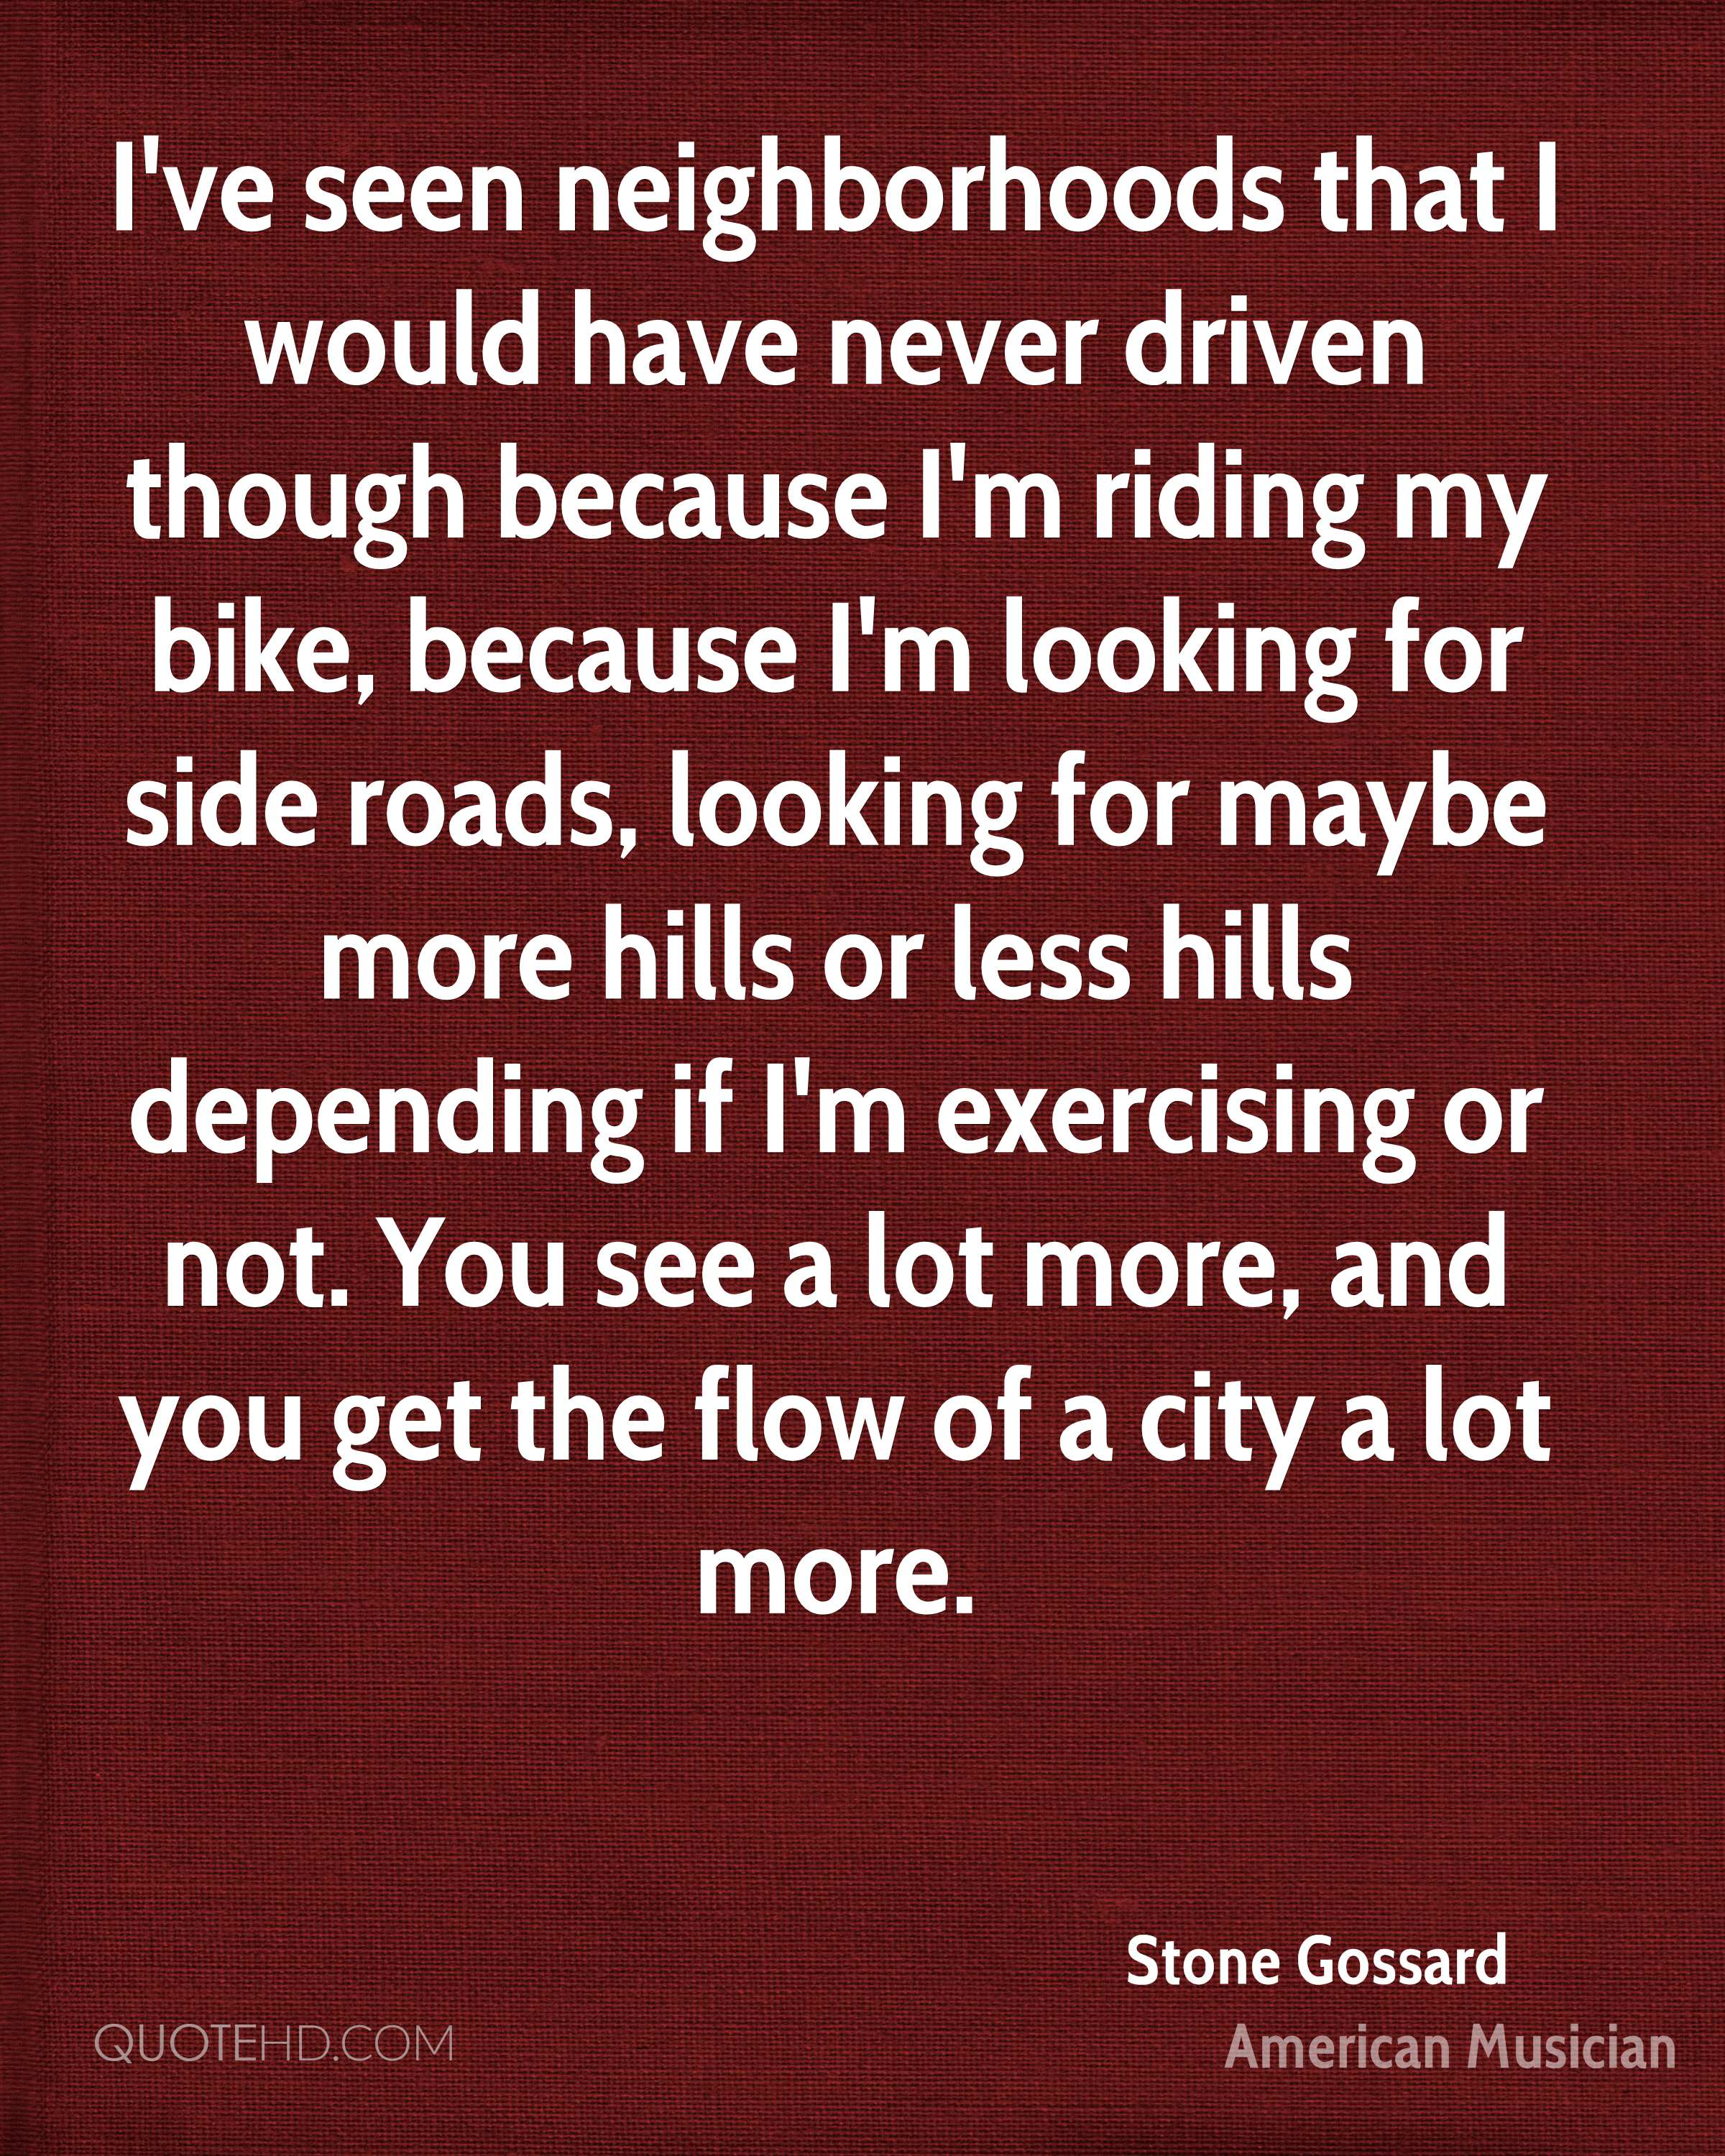 I've seen neighborhoods that I would have never driven though because I'm riding my bike, because I'm looking for side roads, looking for maybe more hills or less hills depending if I'm exercising or not. You see a lot more, and you get the flow of a city a lot more.